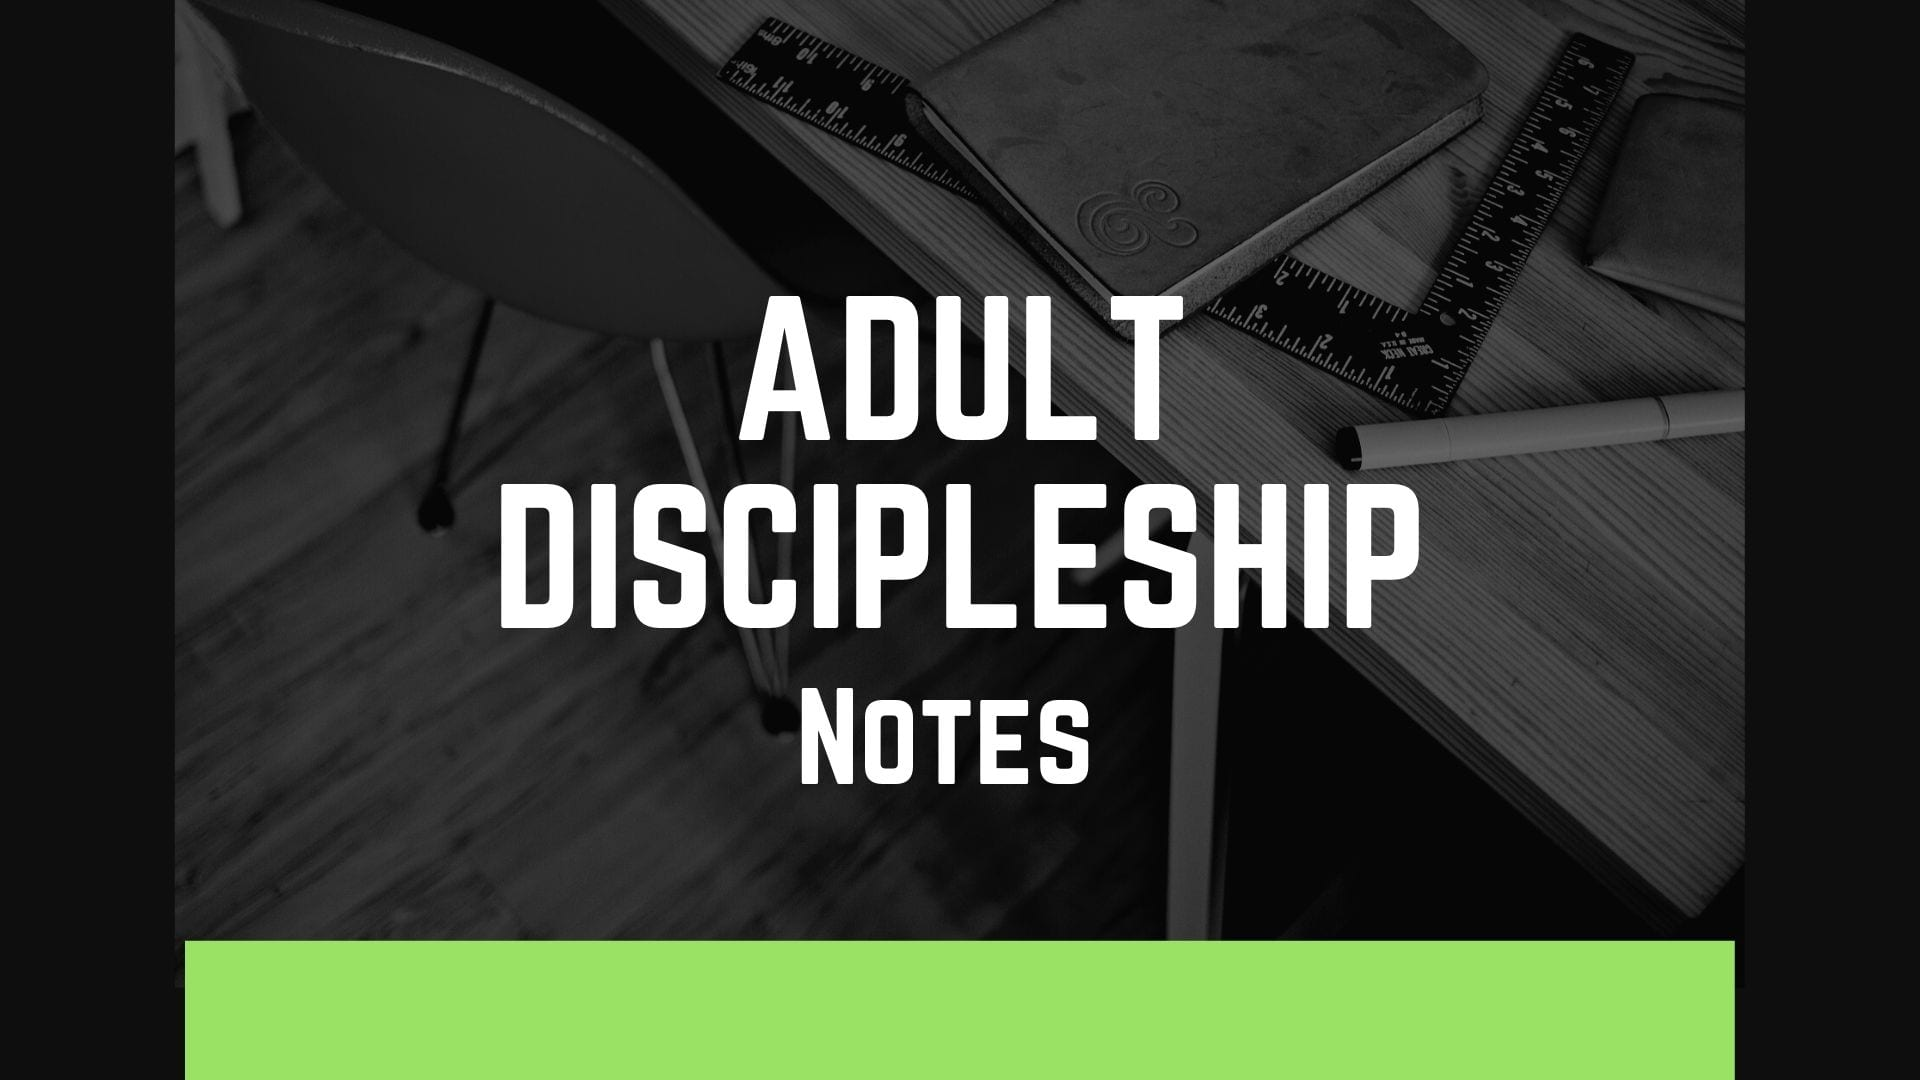 Adult Discipleship Notes